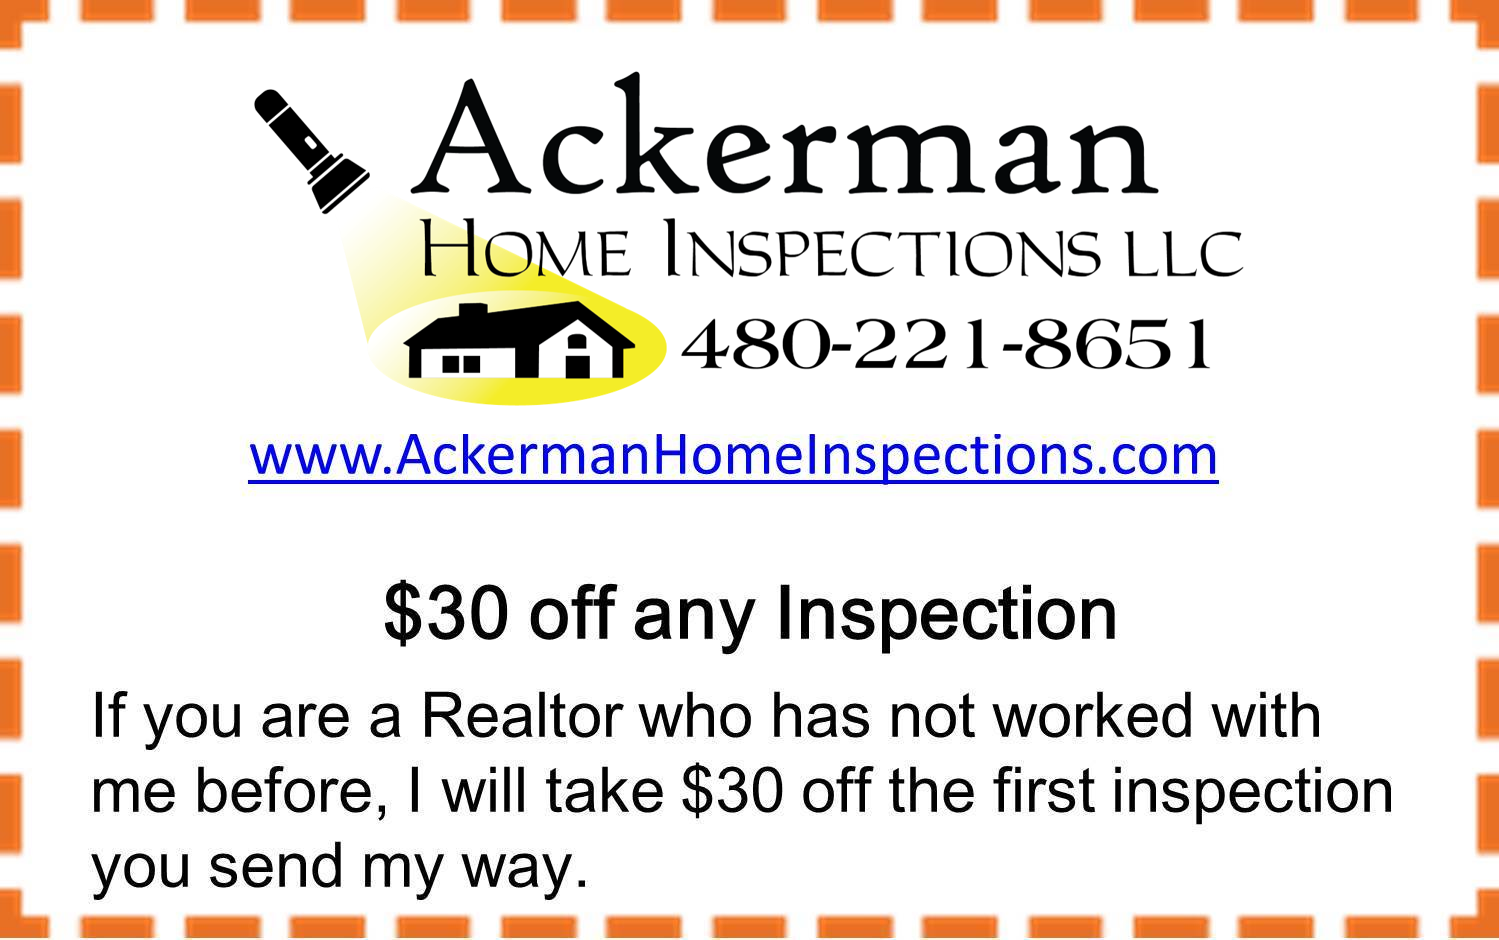 Real estate agents. Your clients will thank you for referring a Certified Master Inspector with competitive pricing and a Buy Back Guarantee.  https://goo.gl/E4Y9JE